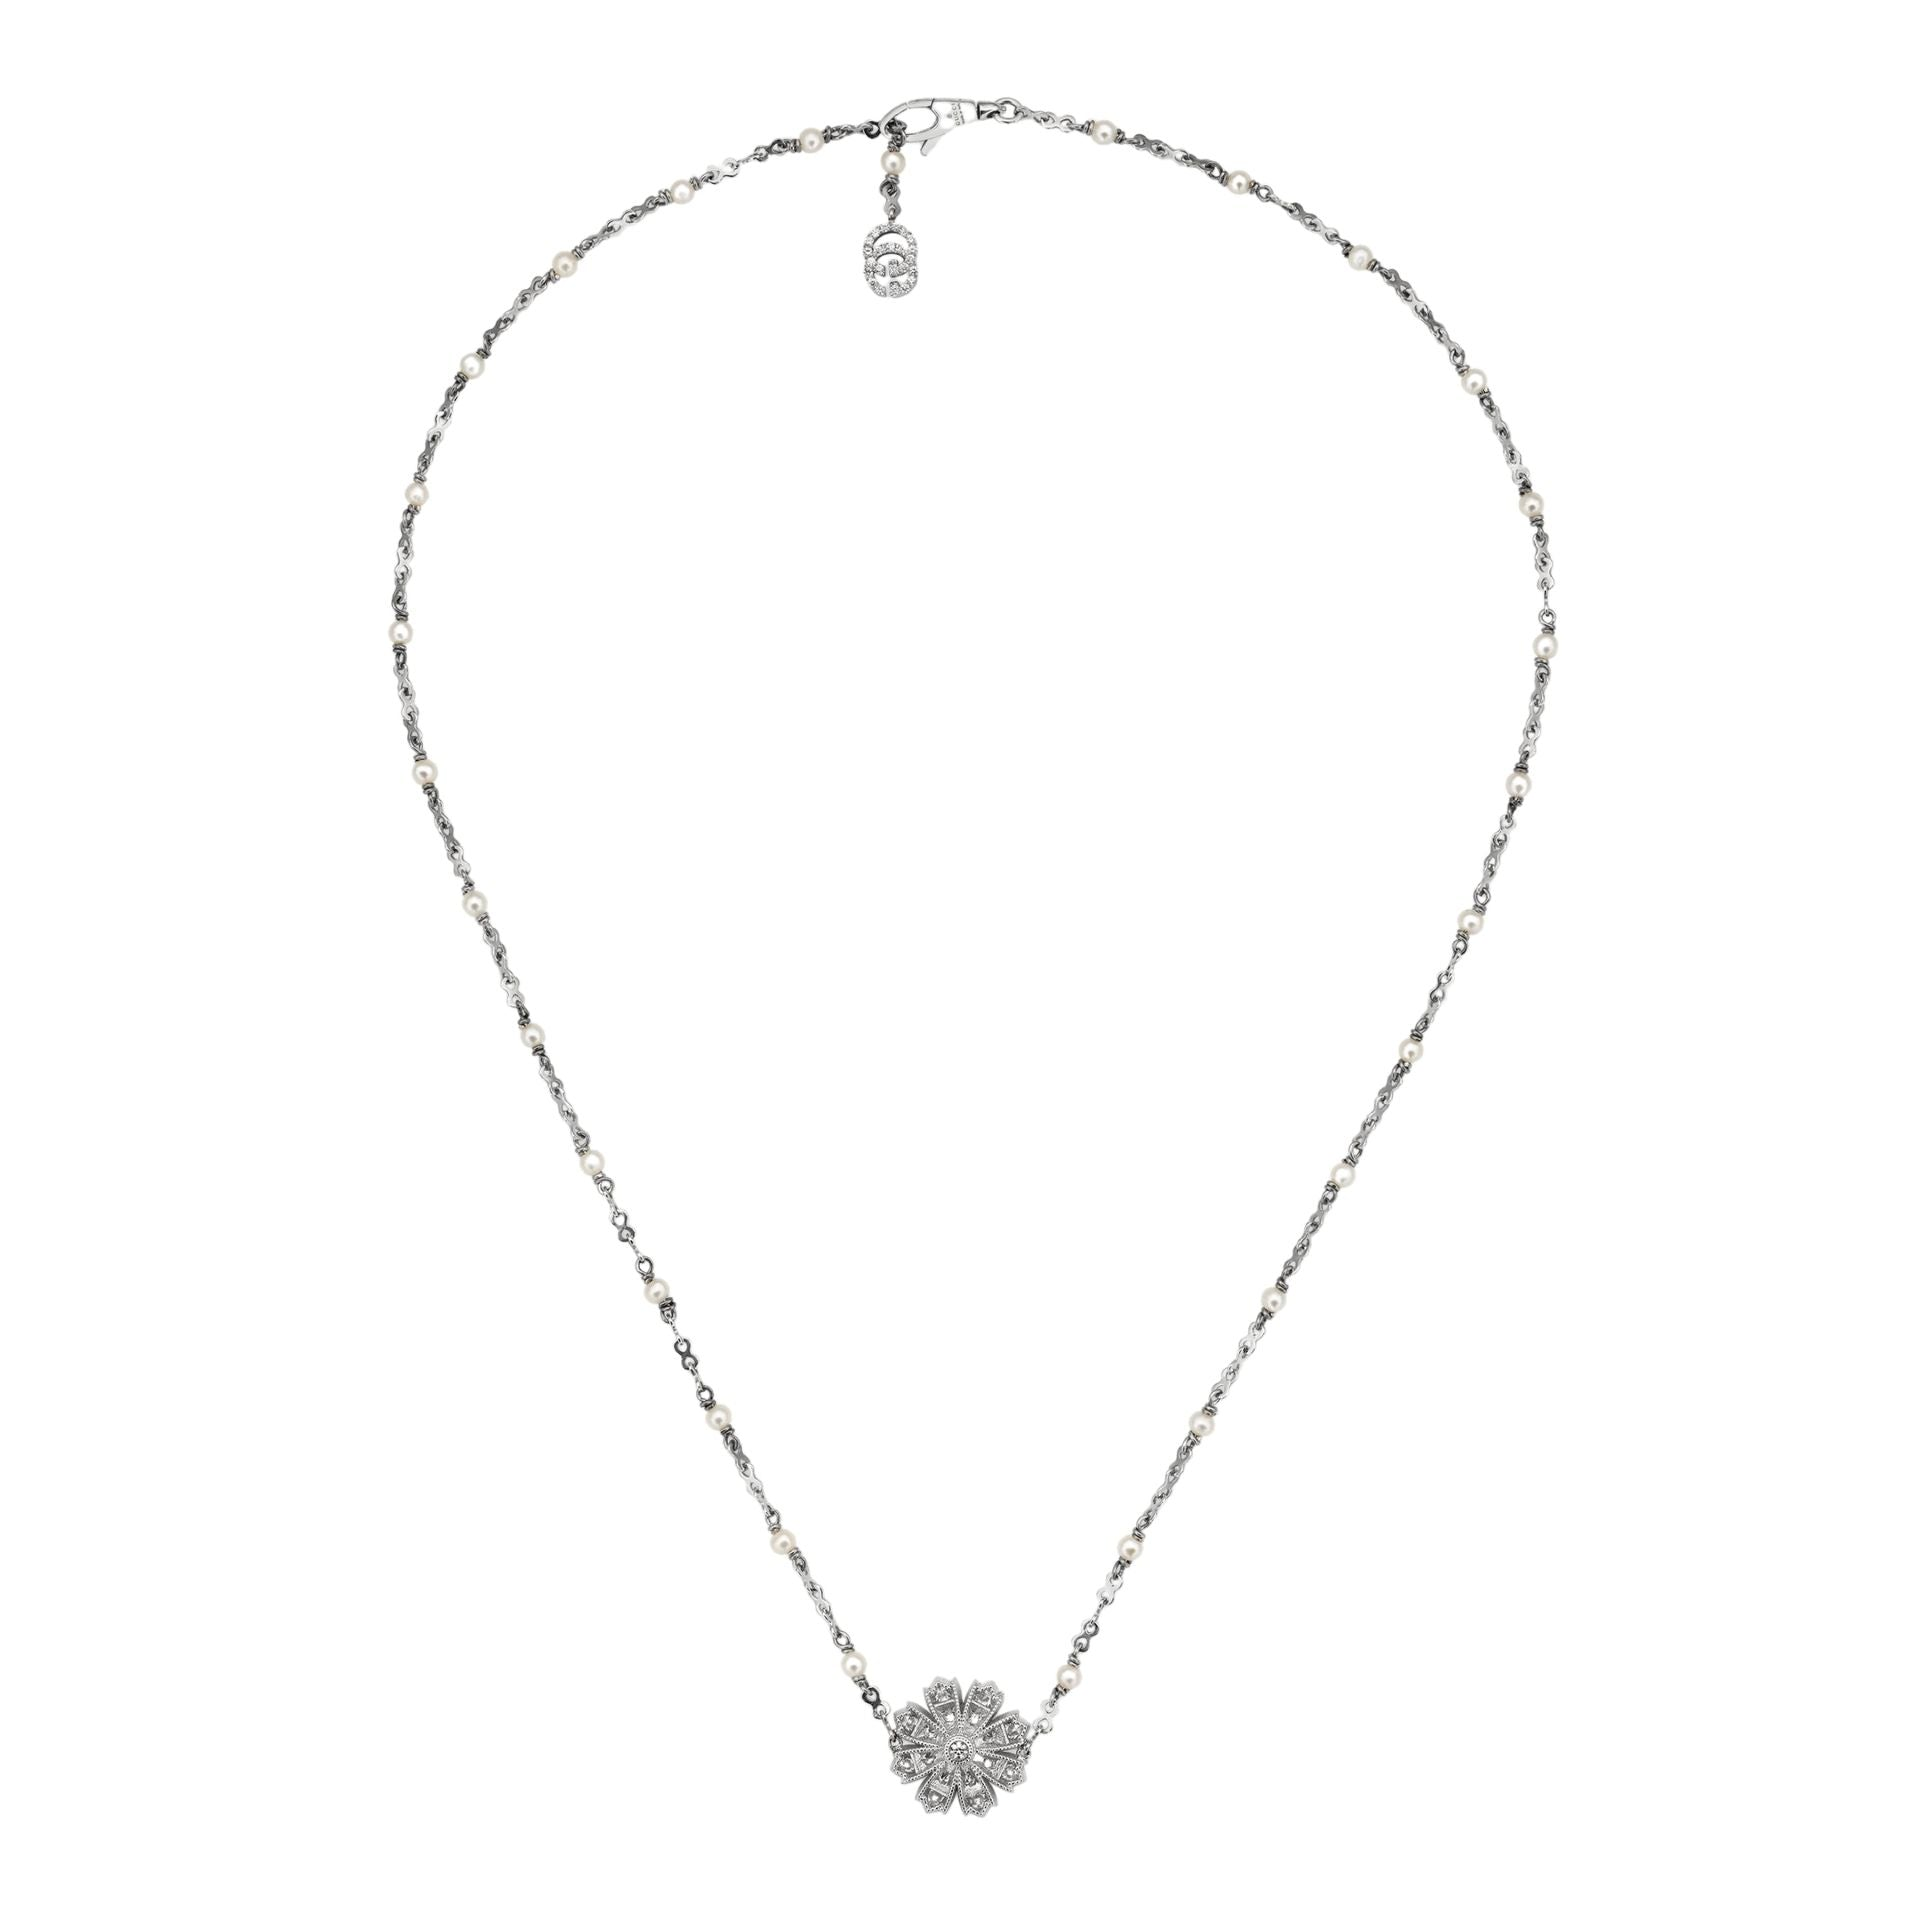 Gucci Flora Necklace in 18k White Gold with Pearls and Diamonds - Orsini Jewellers NZ